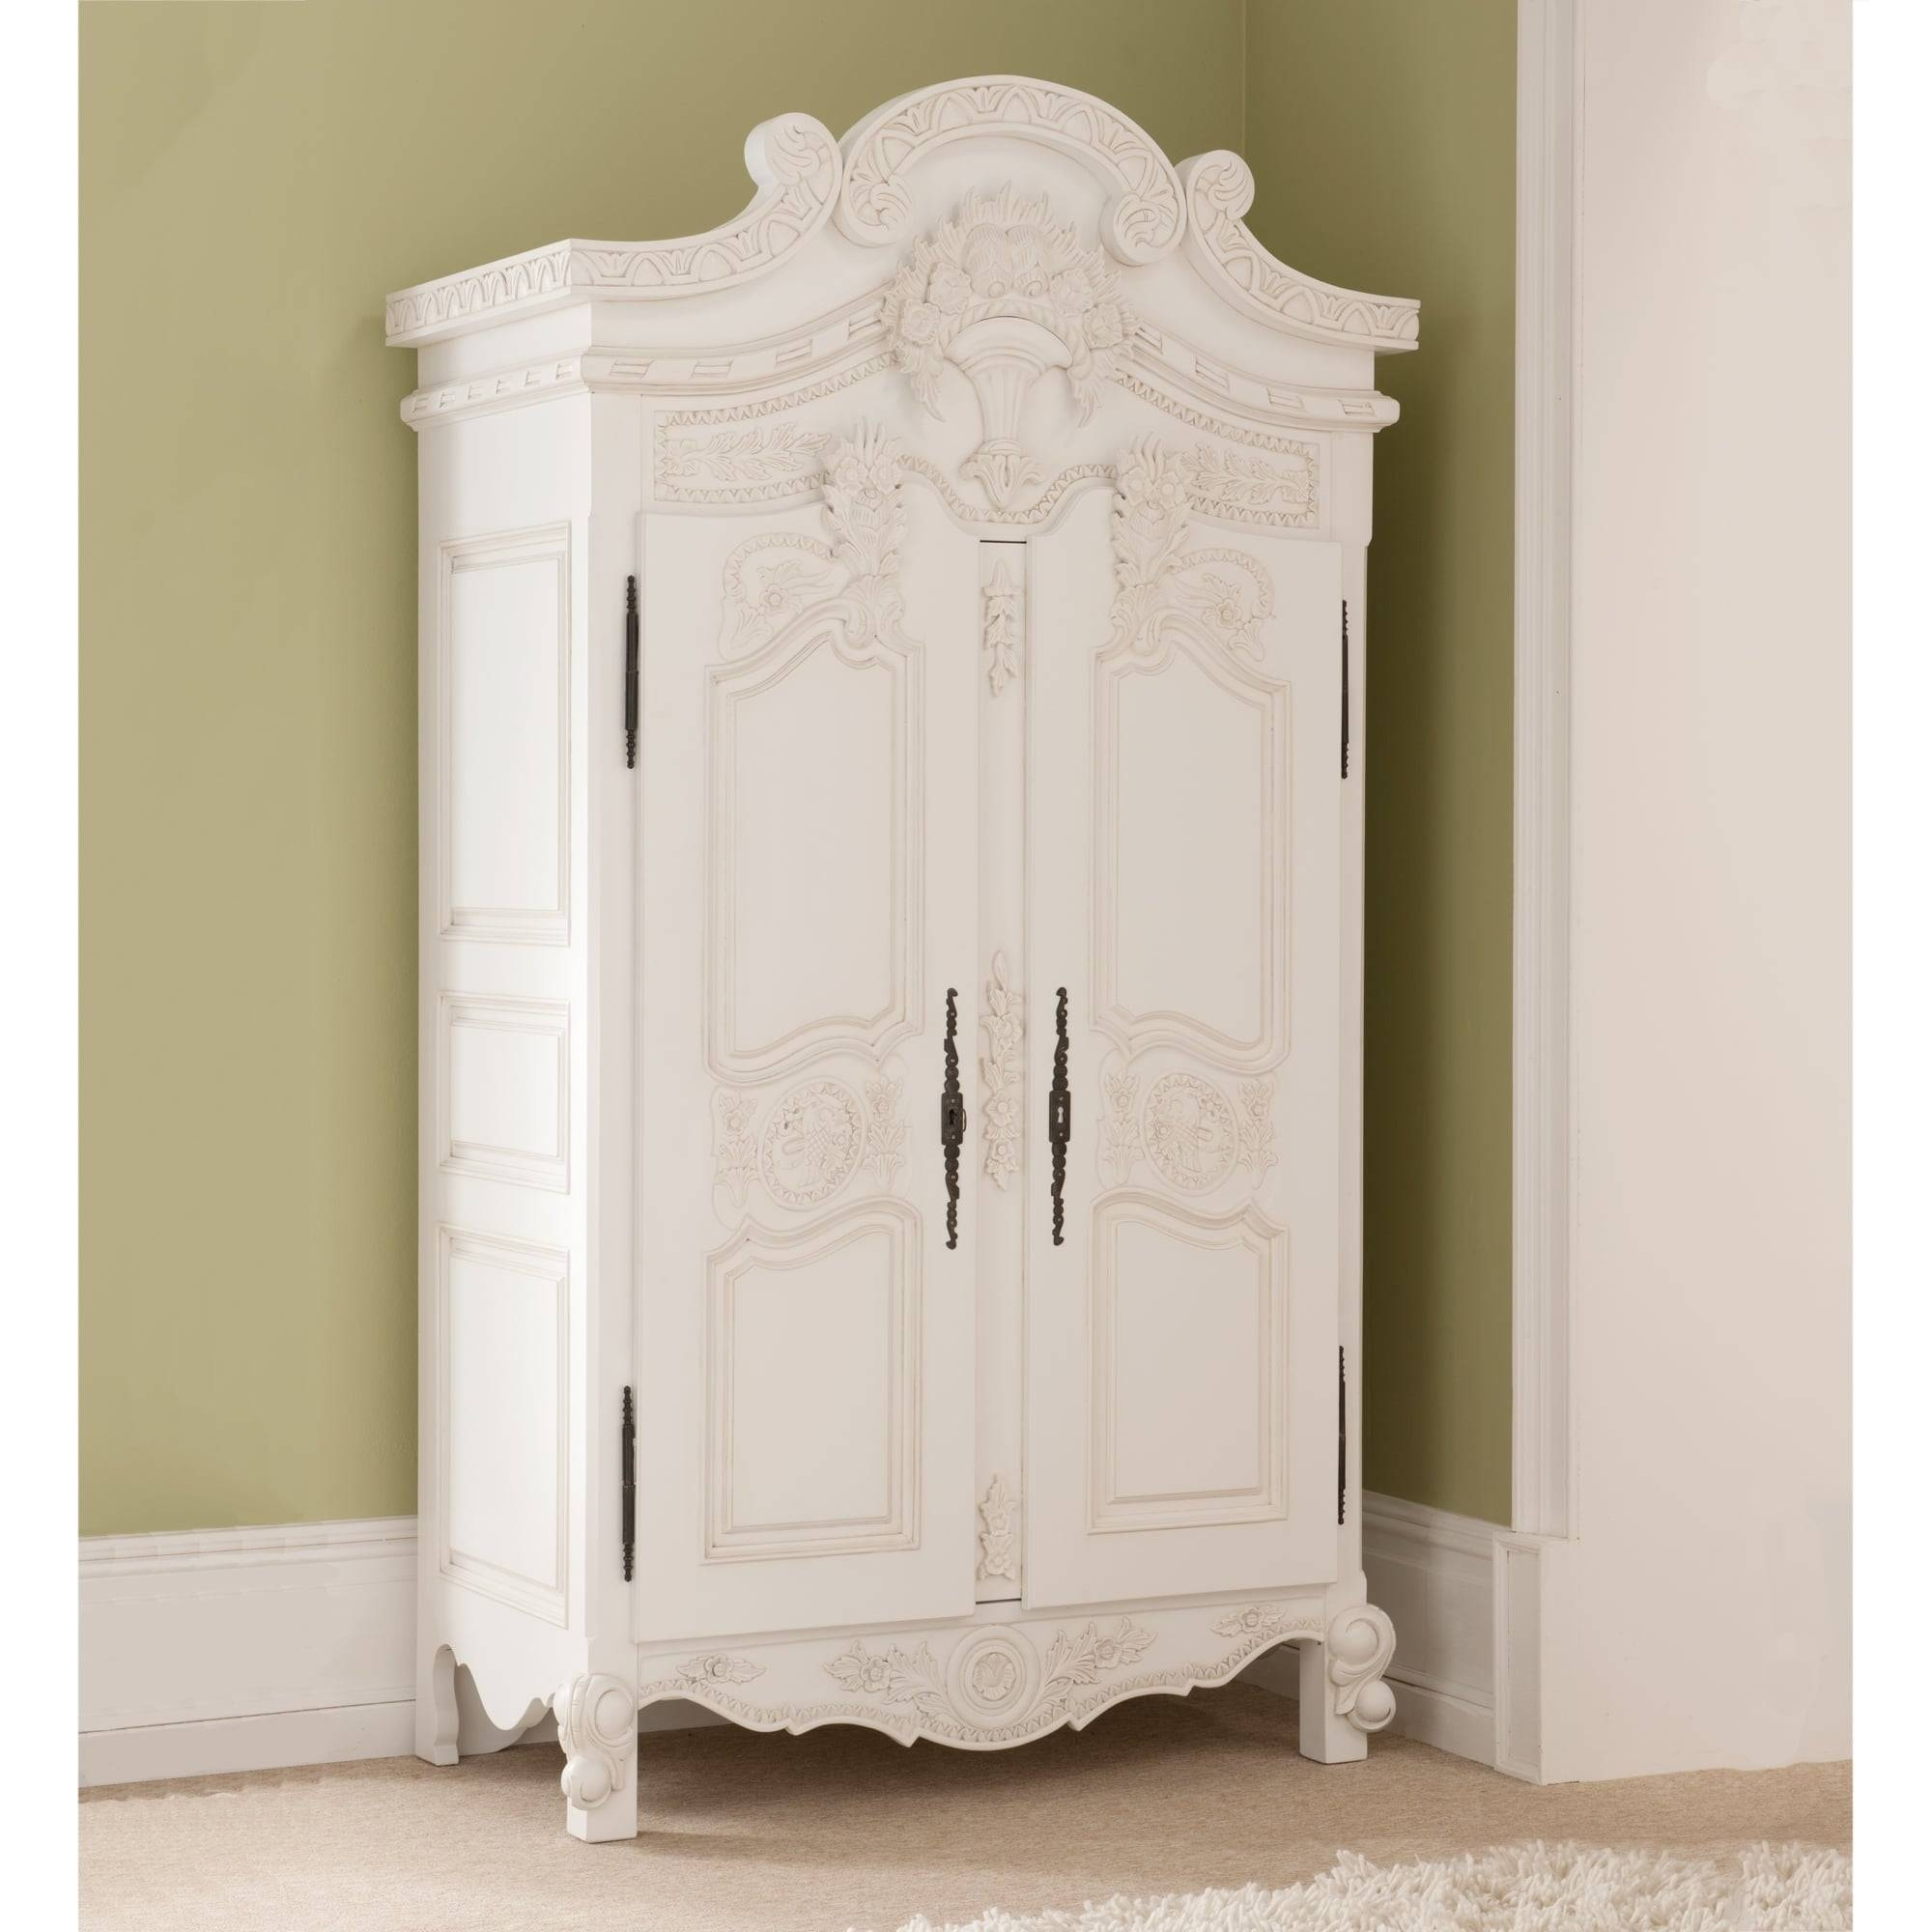 Rococo Antique French Wardrobe A Stunning Addition To Our Shabby regarding Antique White Wardrobes (Image 11 of 15)